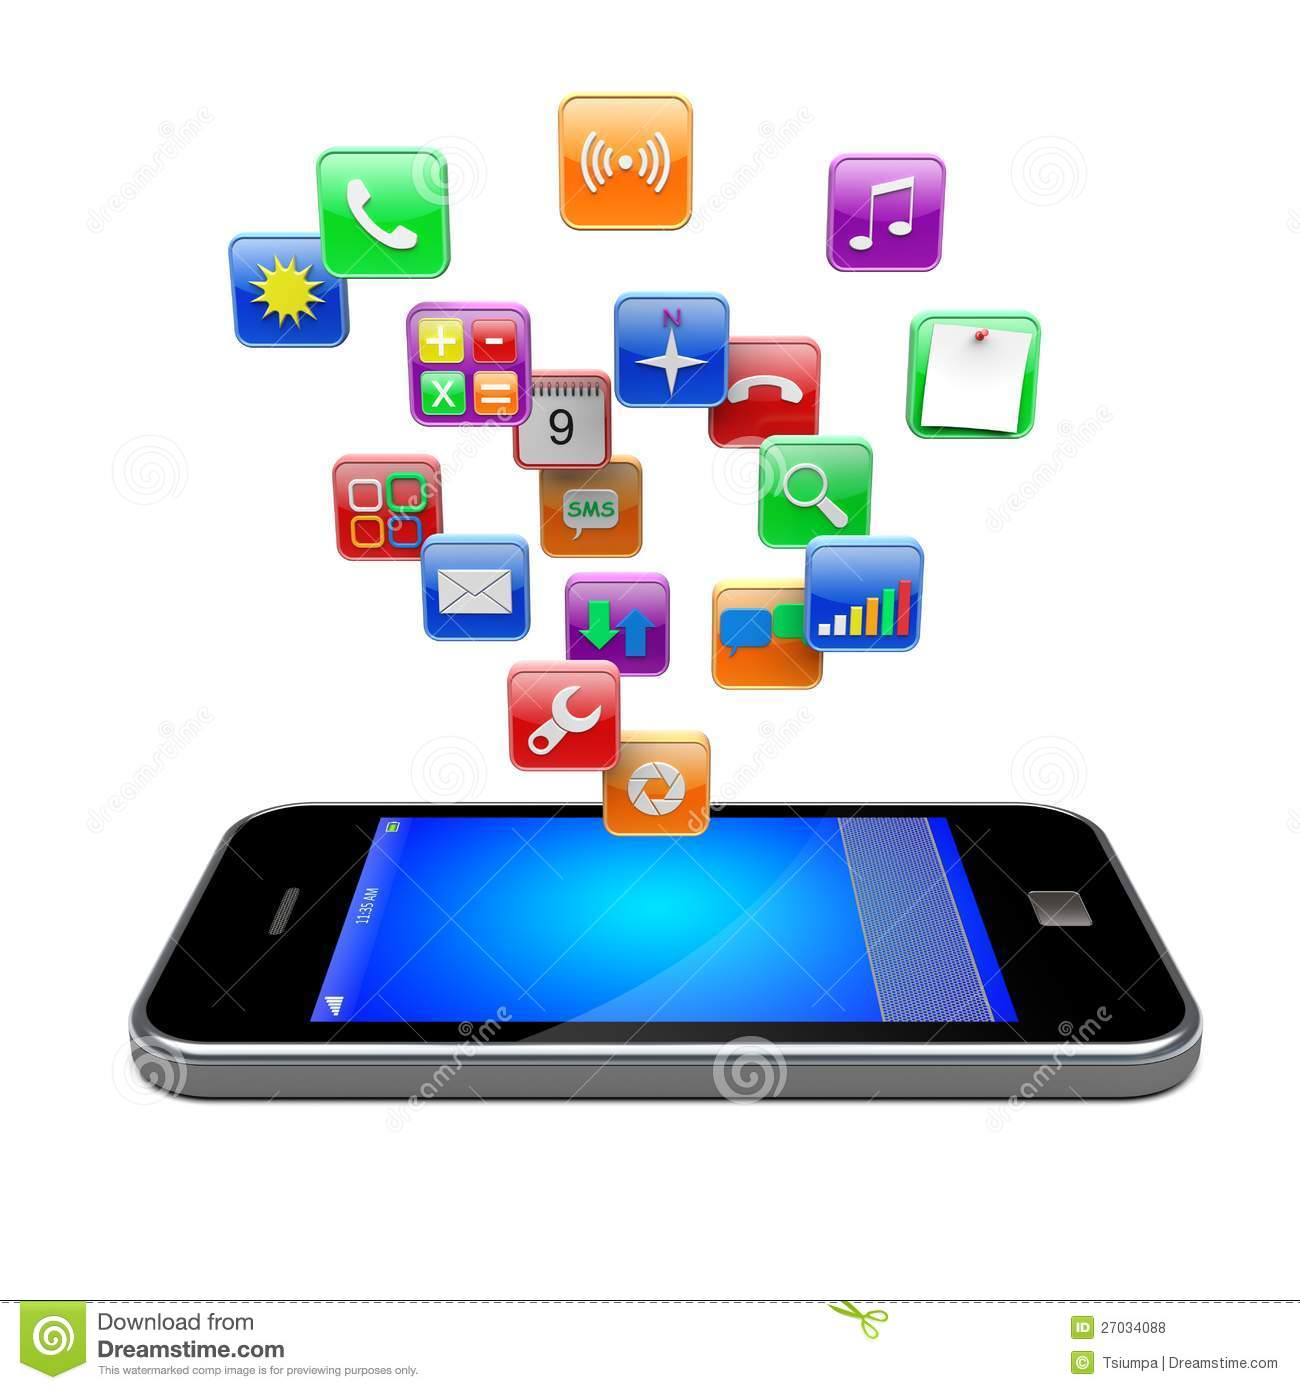 Pics photos cell phone clip art mobile phone icon royalty mobile - Smartphone Apps Icons Royalty Free Stock Photos Image